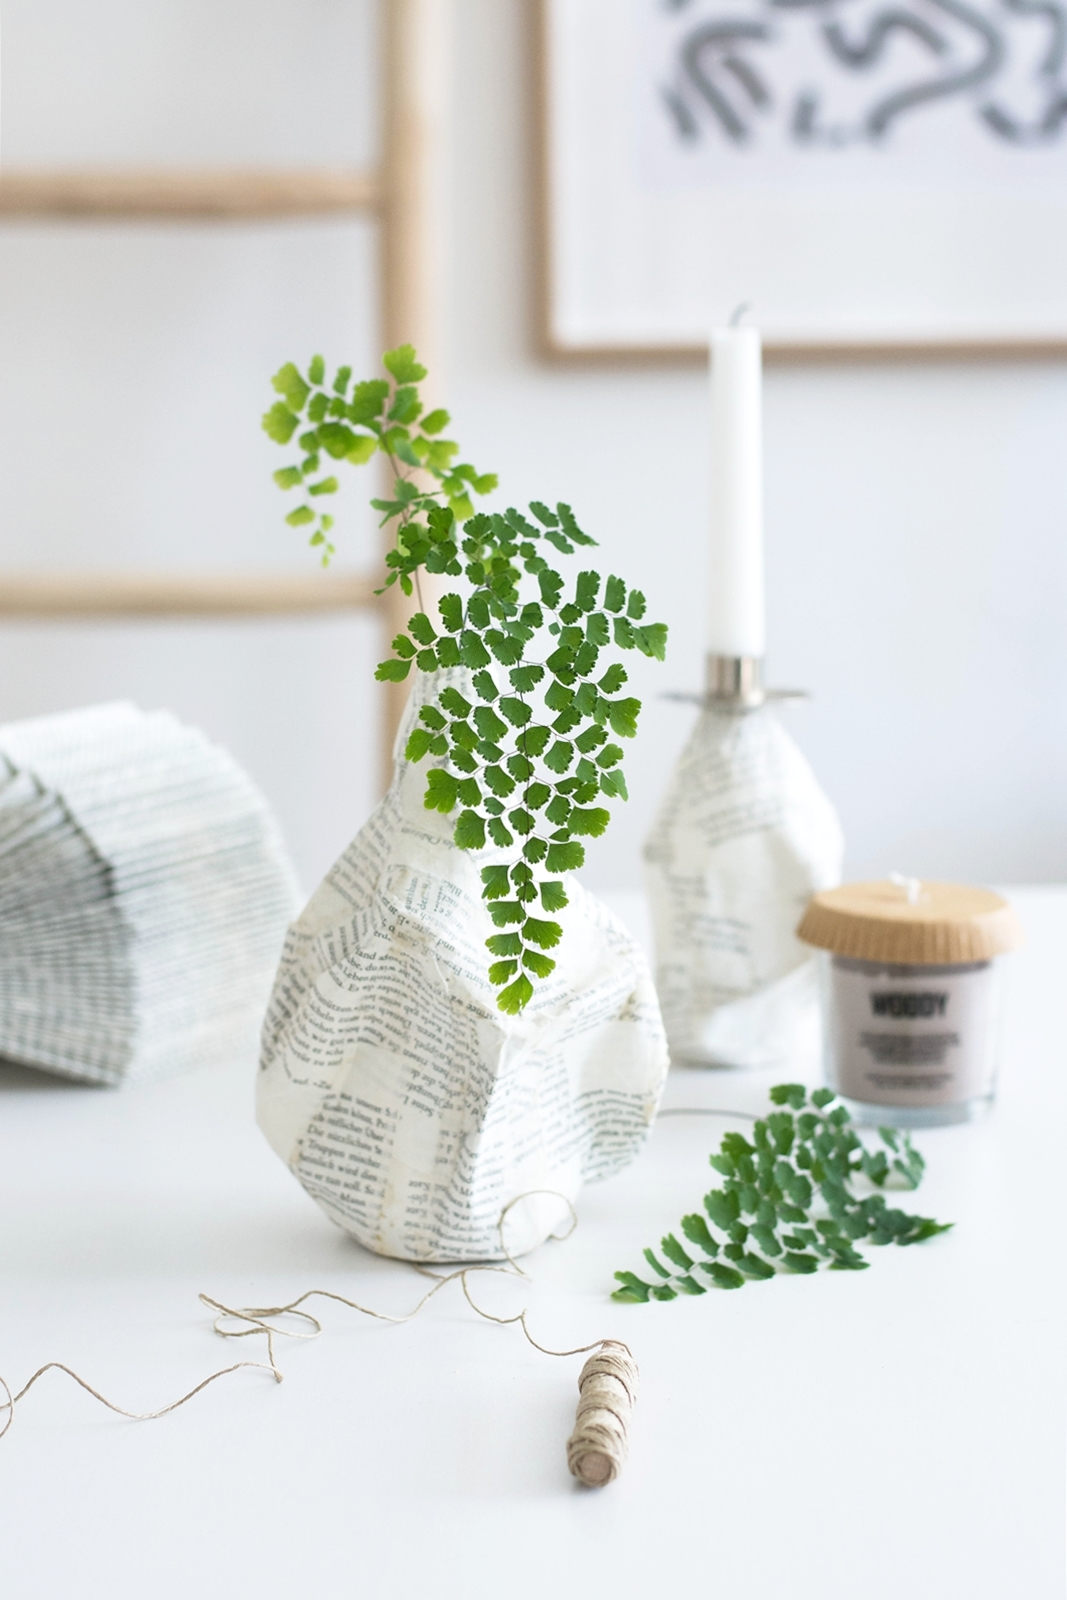 13 diy paper mache decorations for your home shelterness for Home decorations with paper